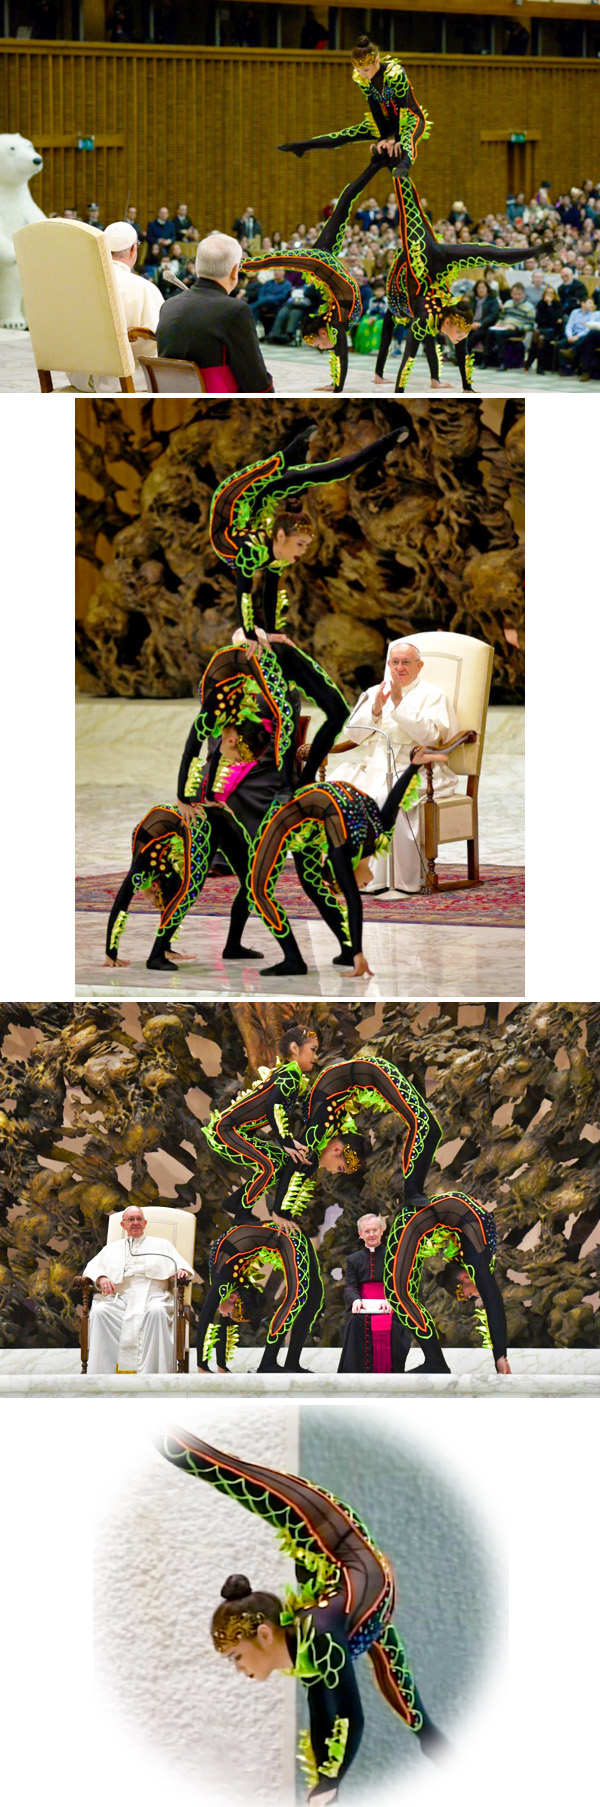 Photo collage of the 2017 Vatican Christmas circus with acrobats in transparent leotards performing for Pope Francis